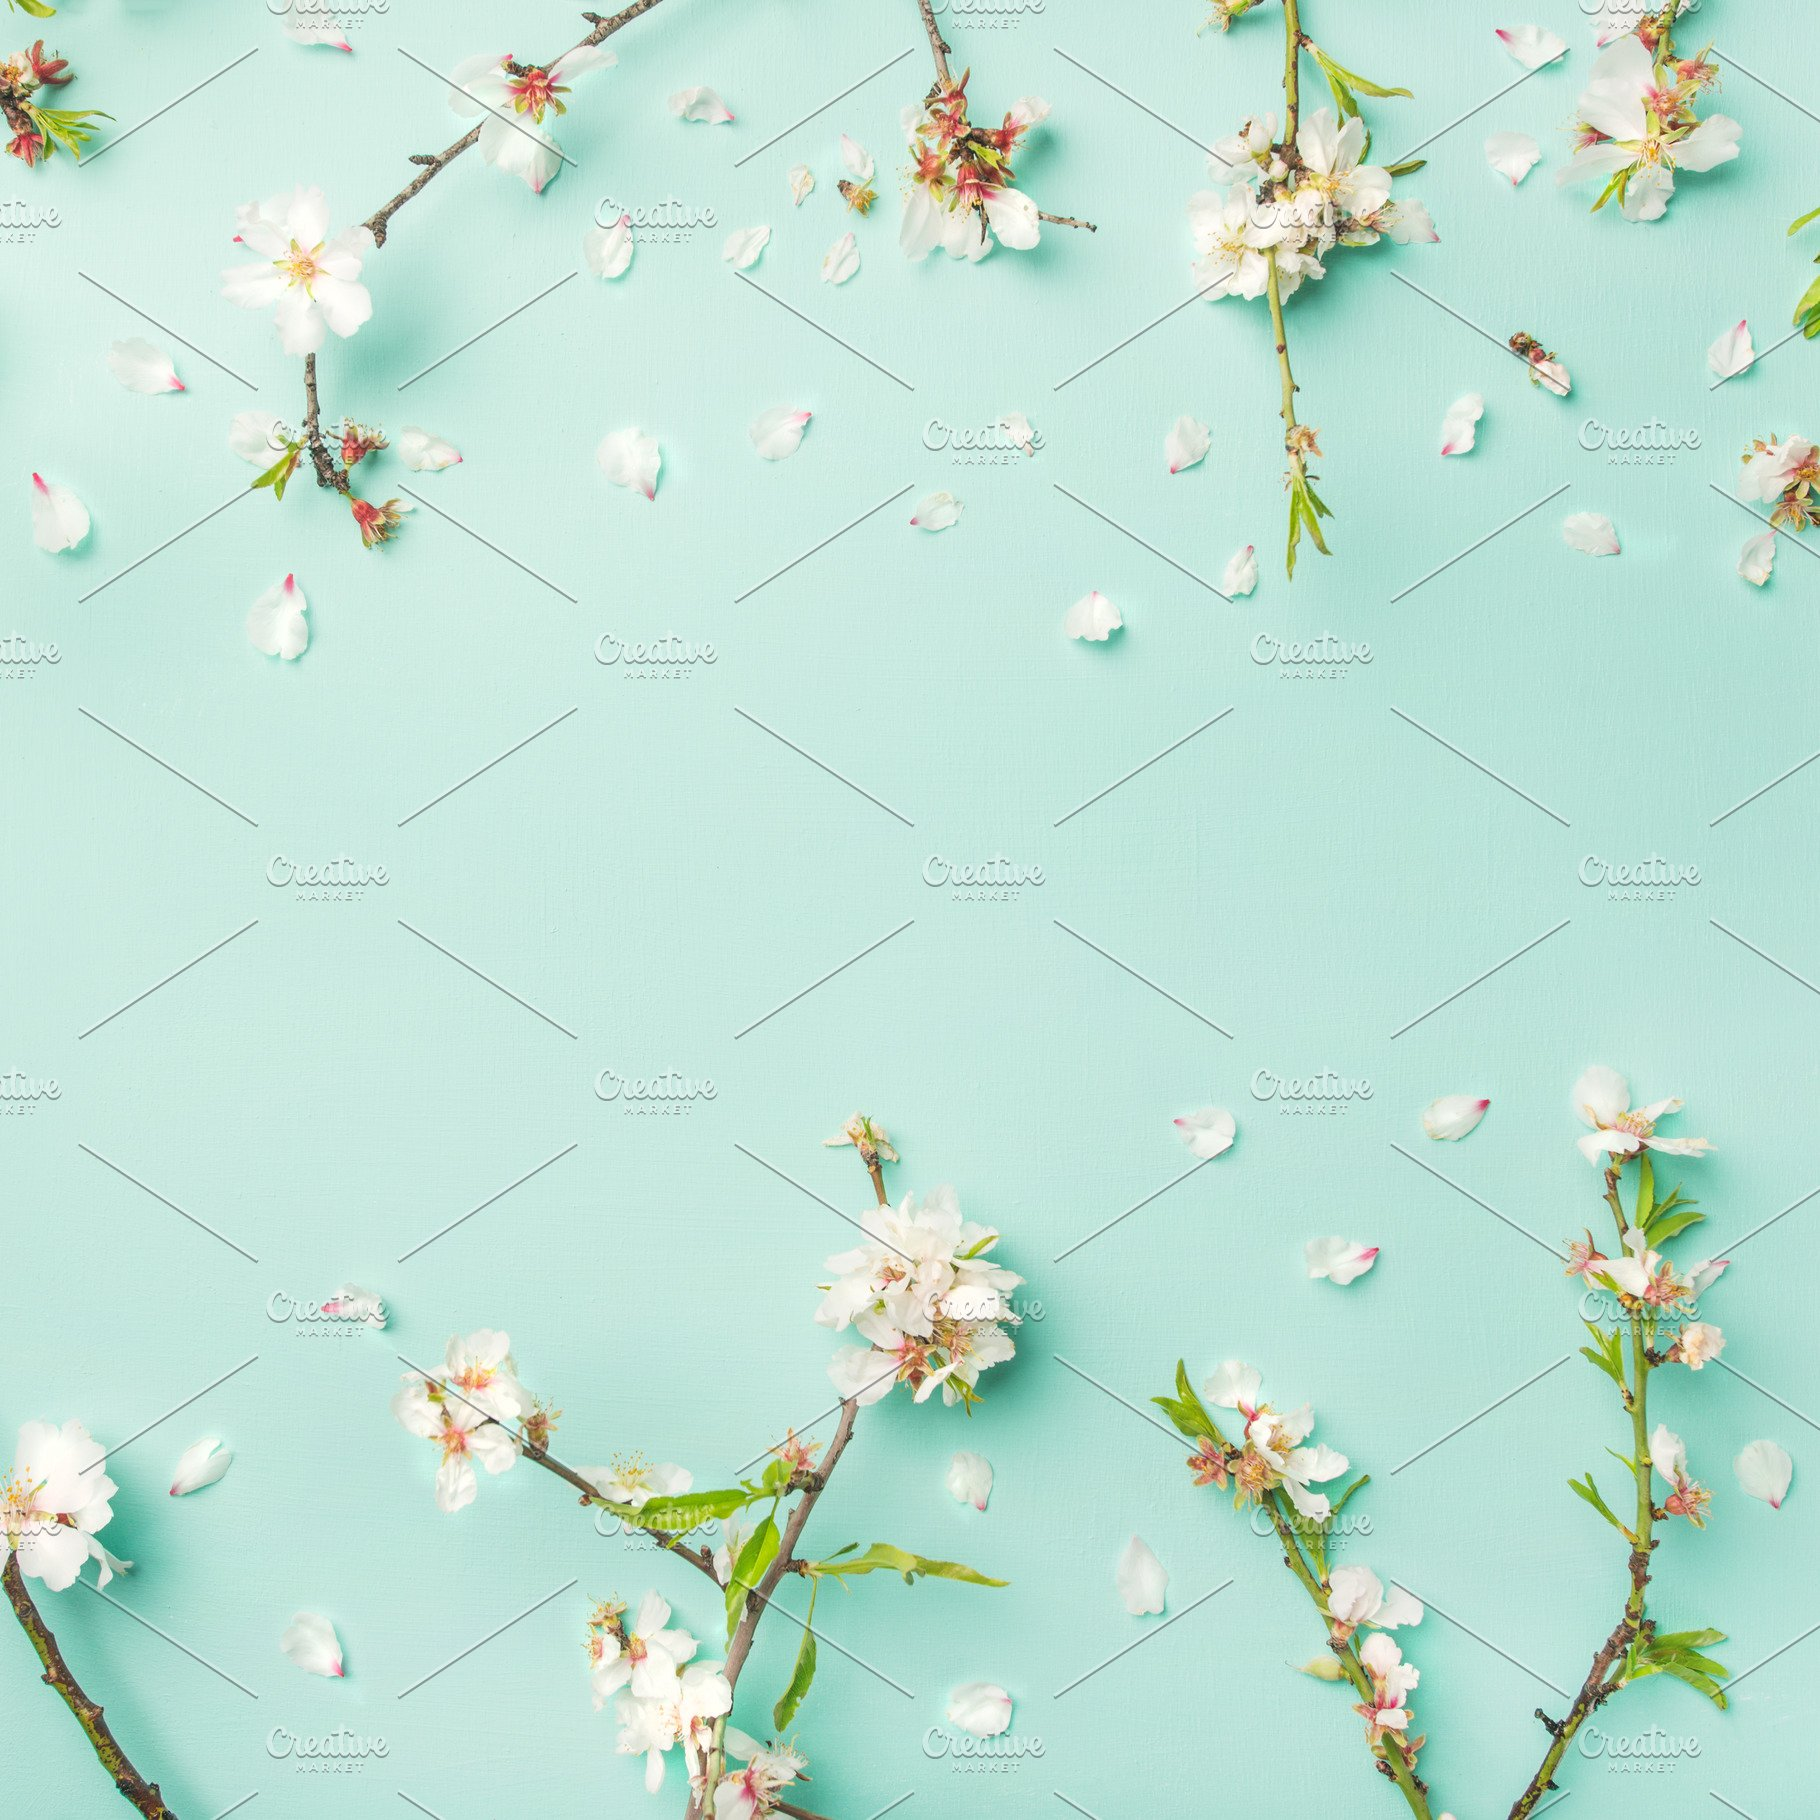 Spring Floral Background With Almond Blossom Flowers Square Crop